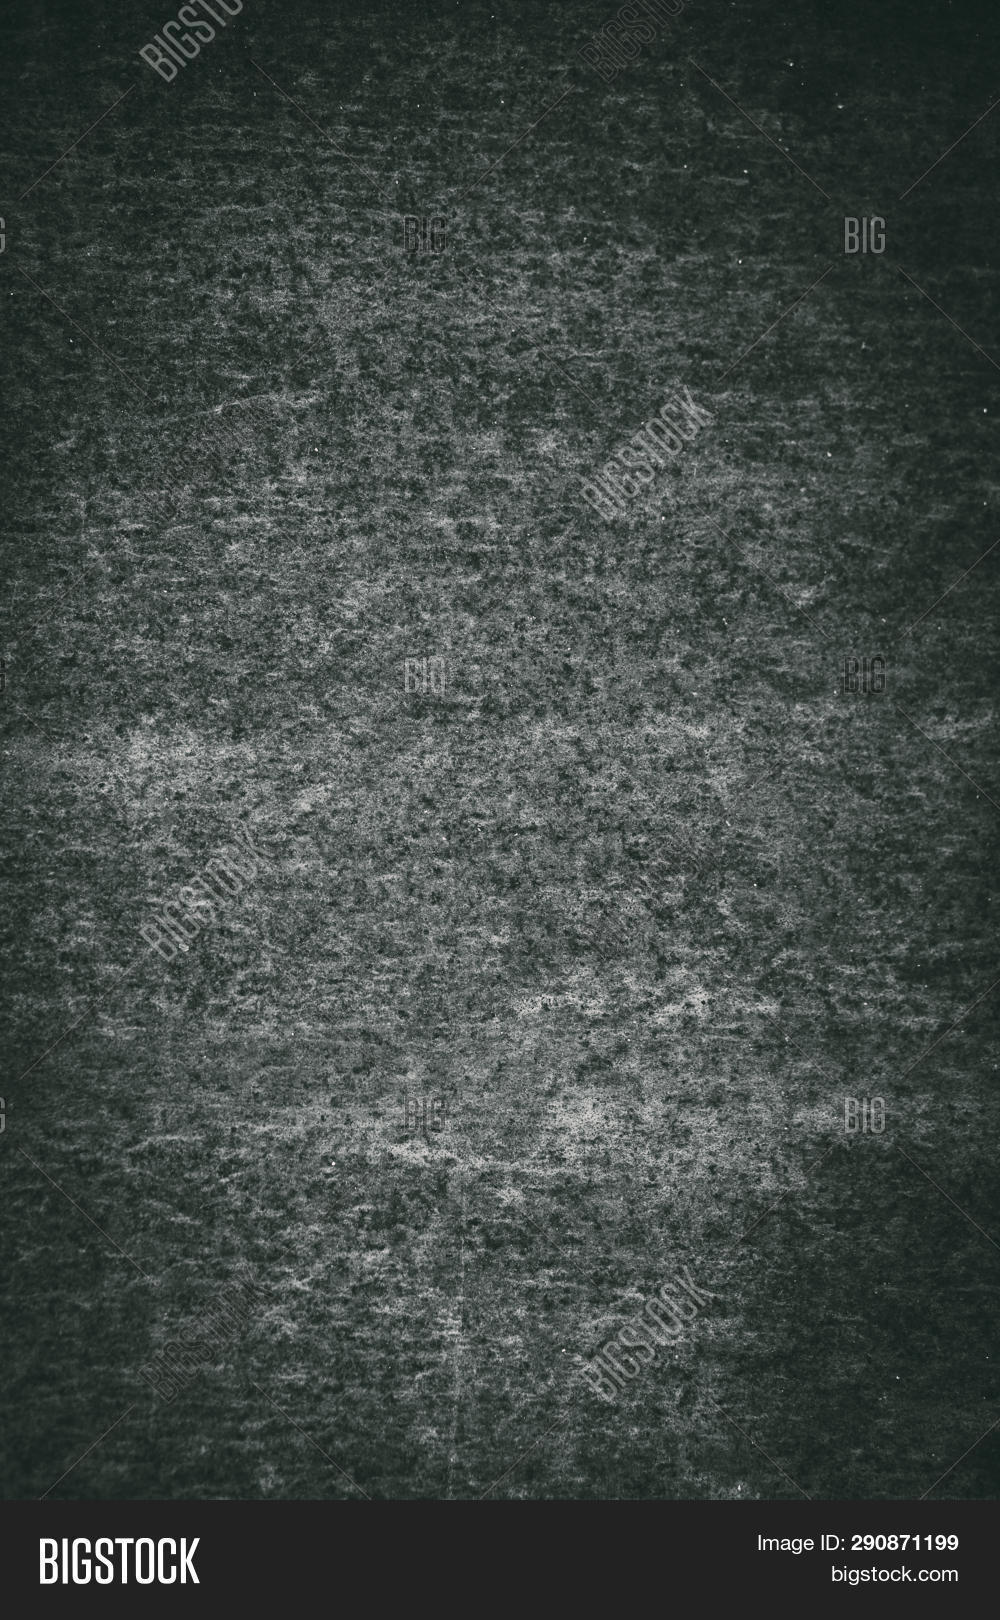 Dark Grey Abstract Image Photo Free Trial Bigstock